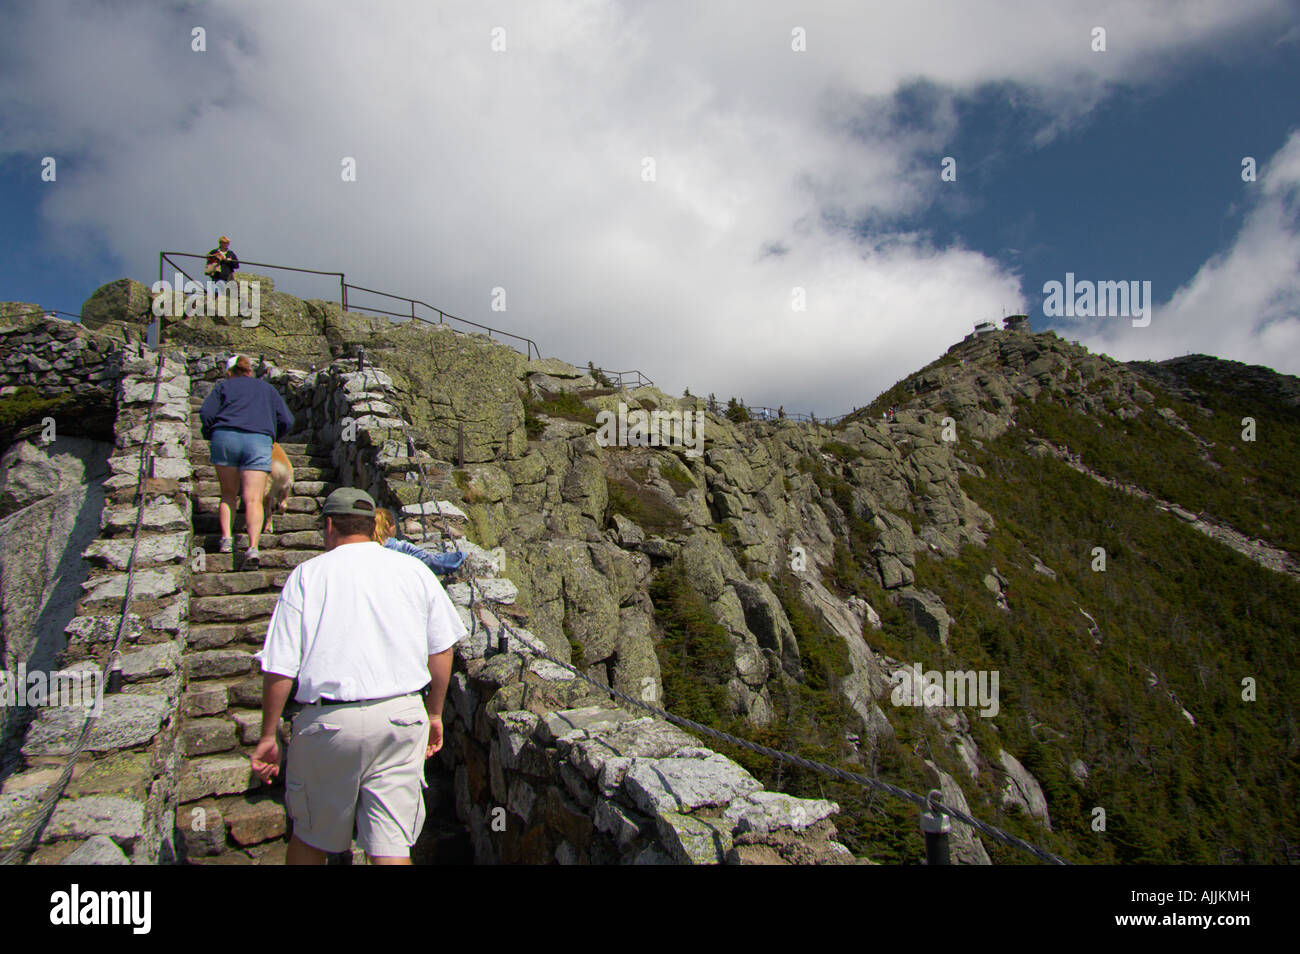 People Walking Up Stairs Leading To Summit Of Whiteface